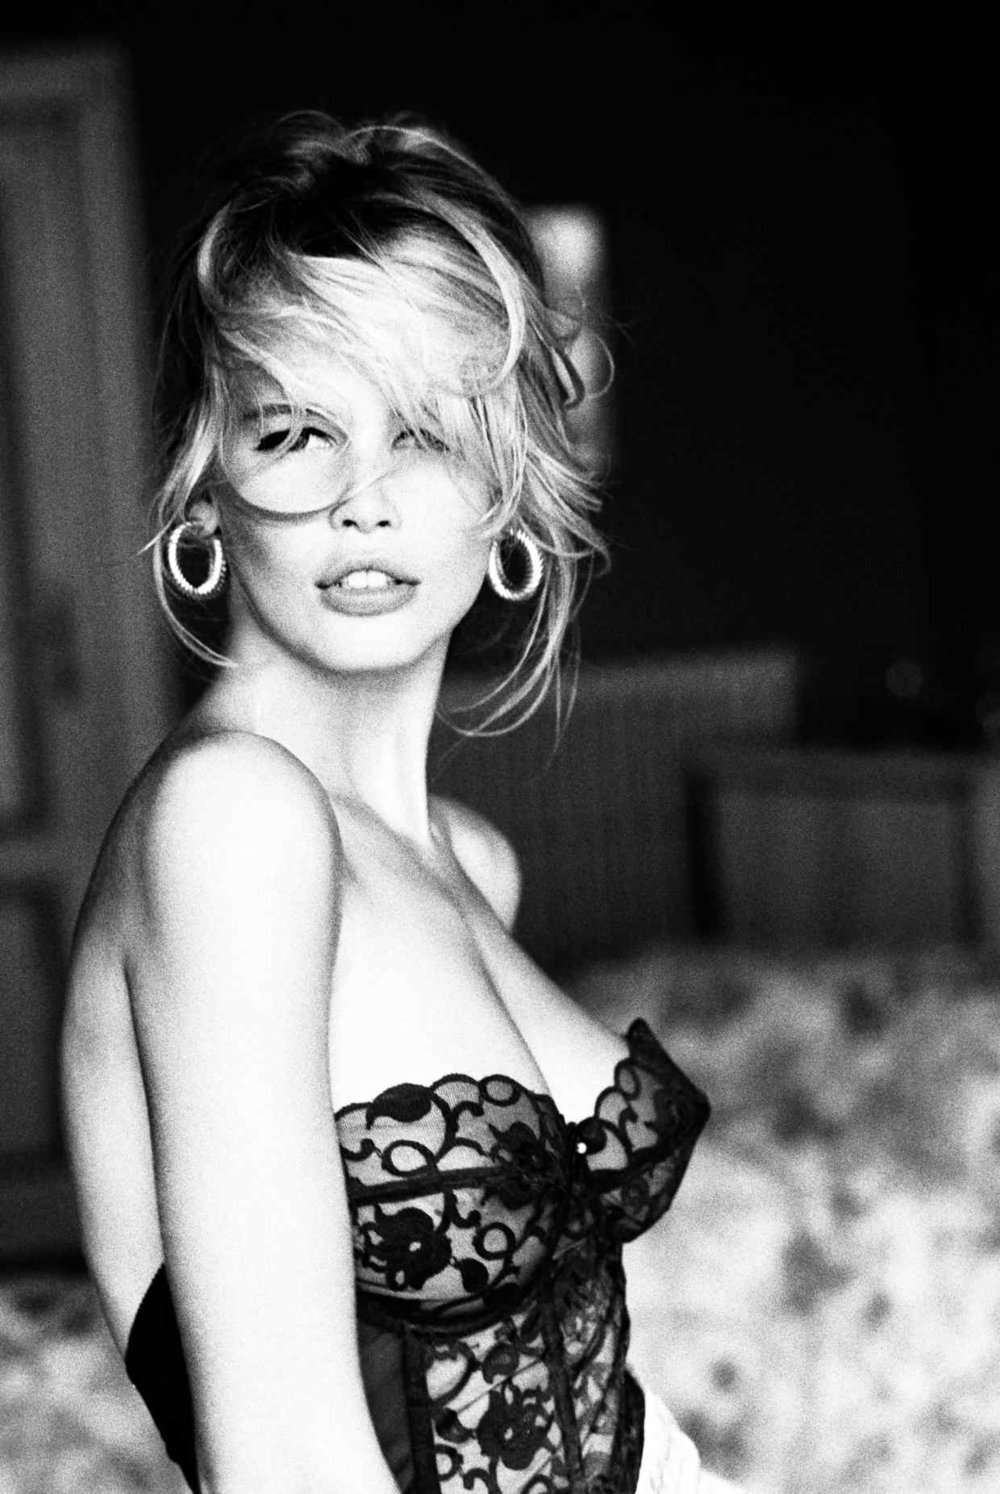 Claudia Schiffer, Guess Campaign, Morocco 1989; black & white print on baryte paper, 180cm x 120cm, £24,000